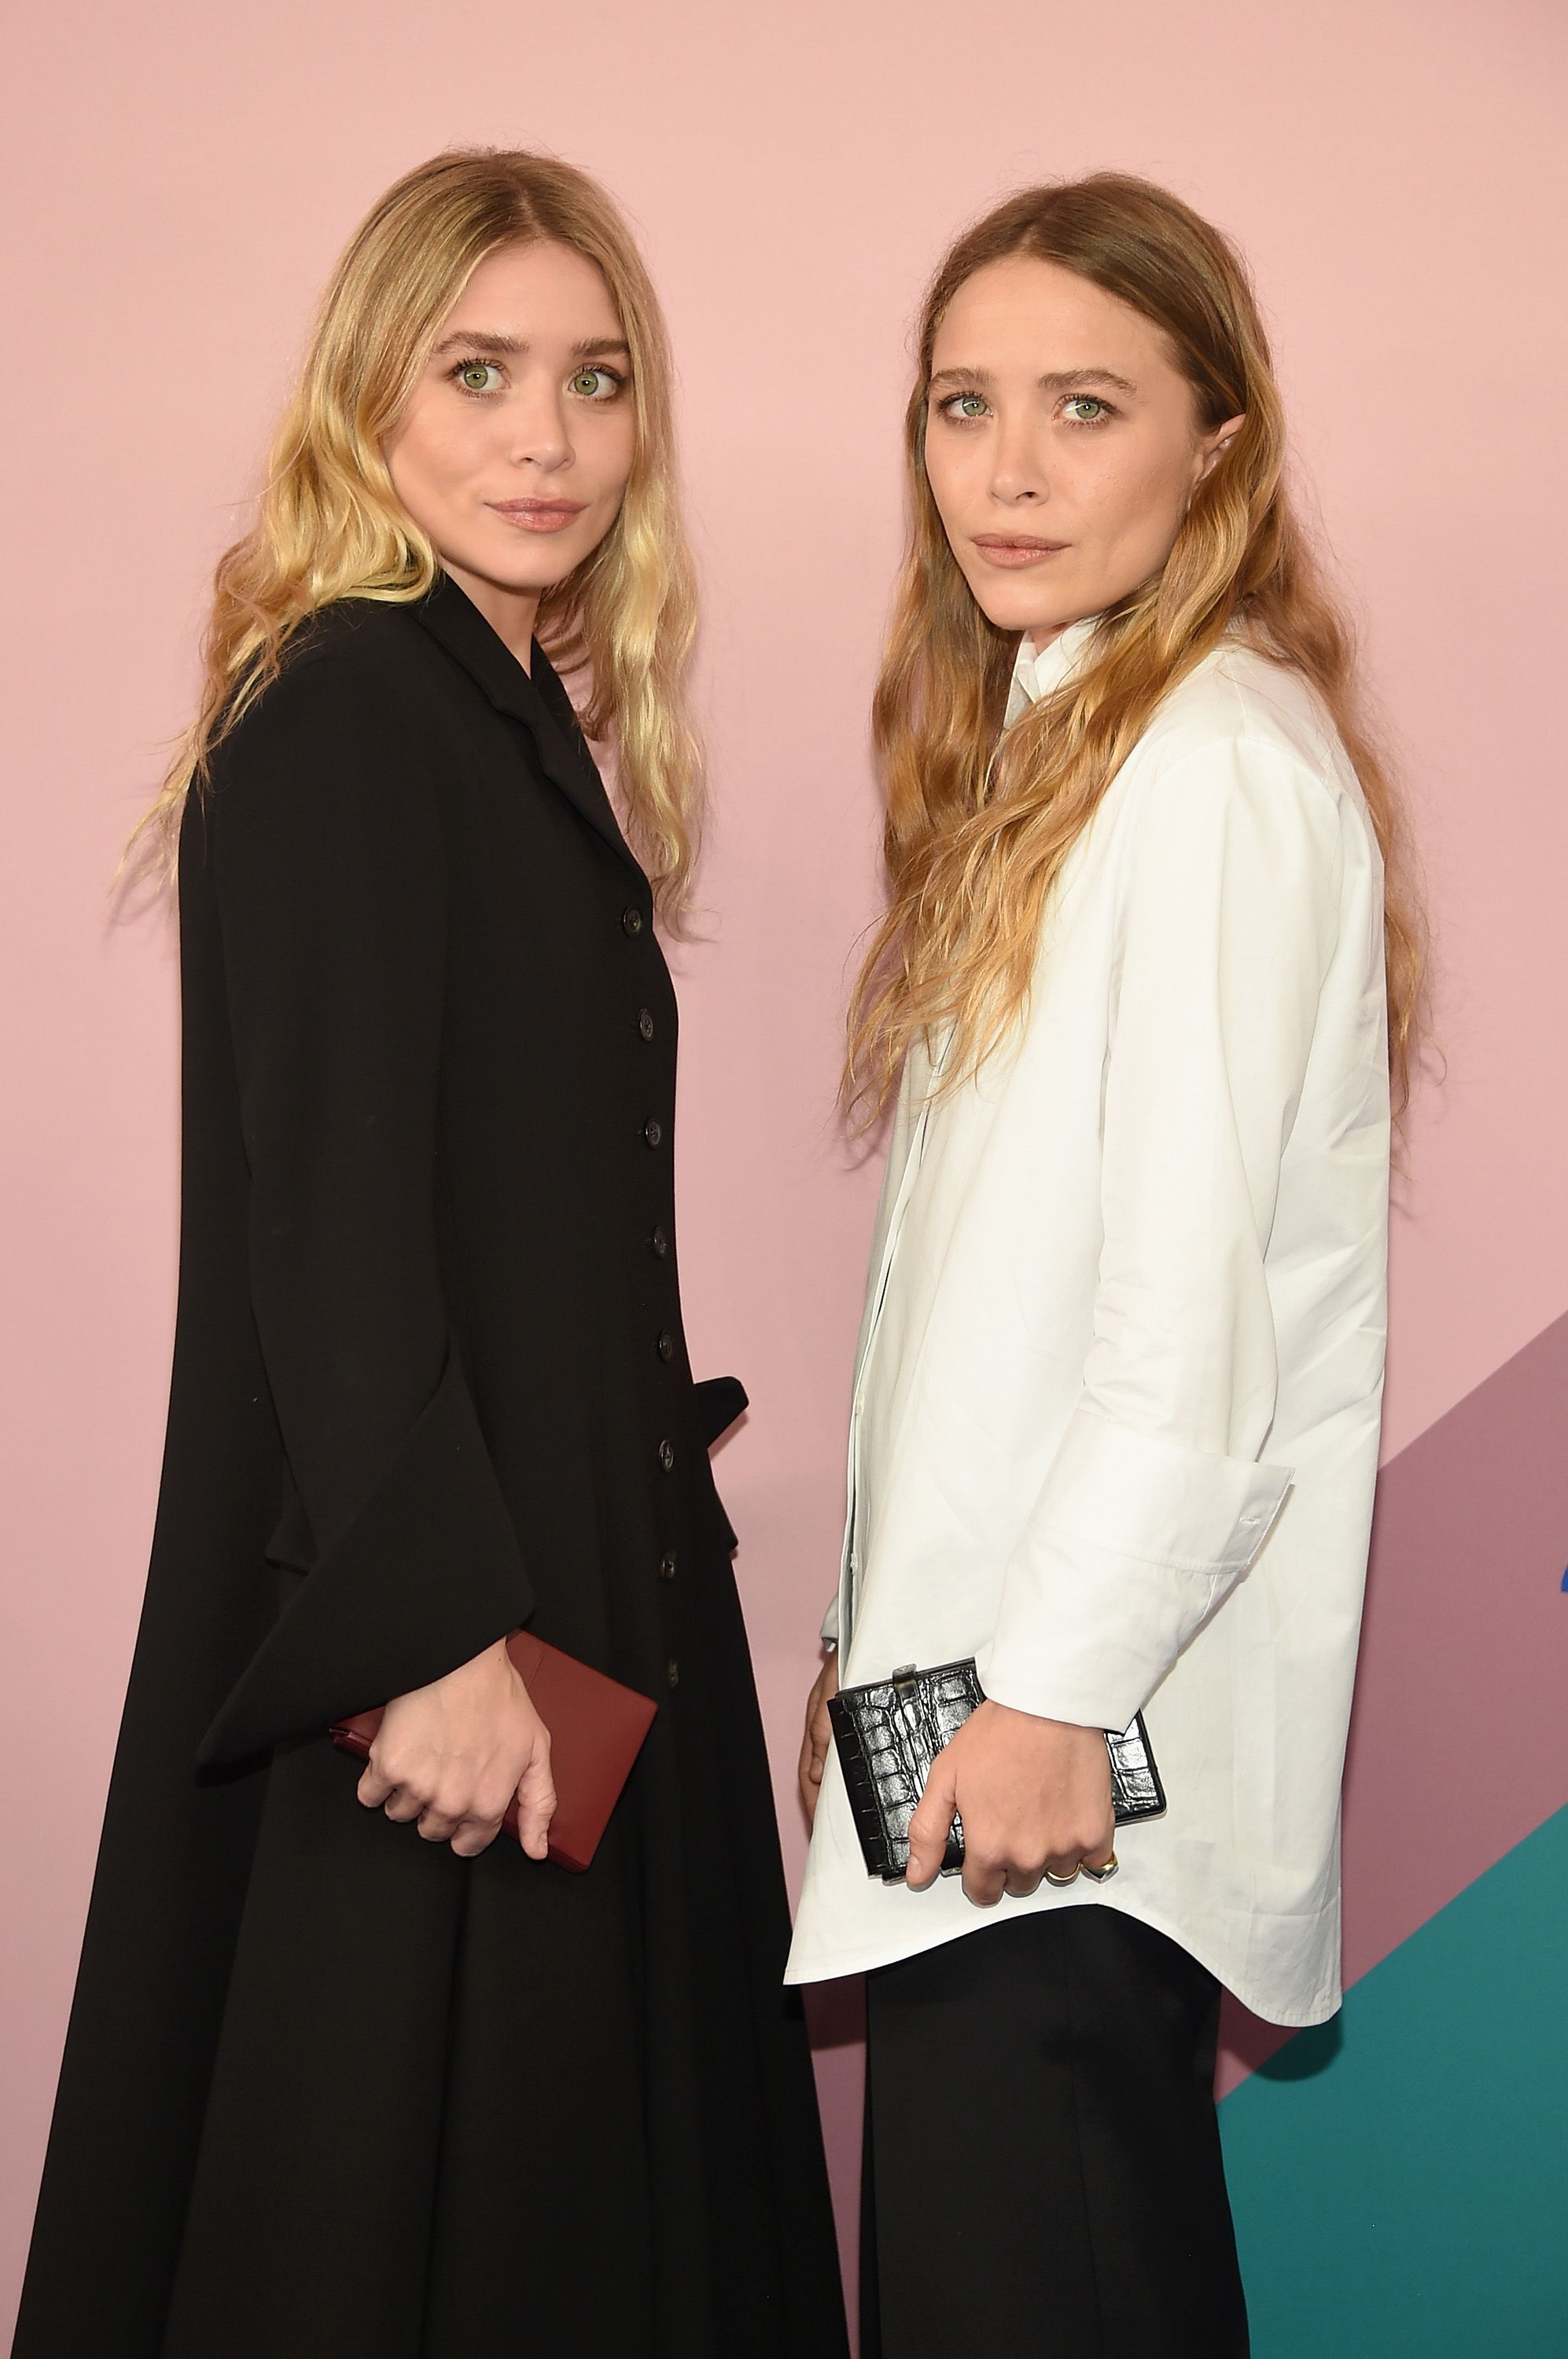 Mary Kate And Ashley Olsen Net Worth 2019 How Much Money Do The Olsen Twins Make